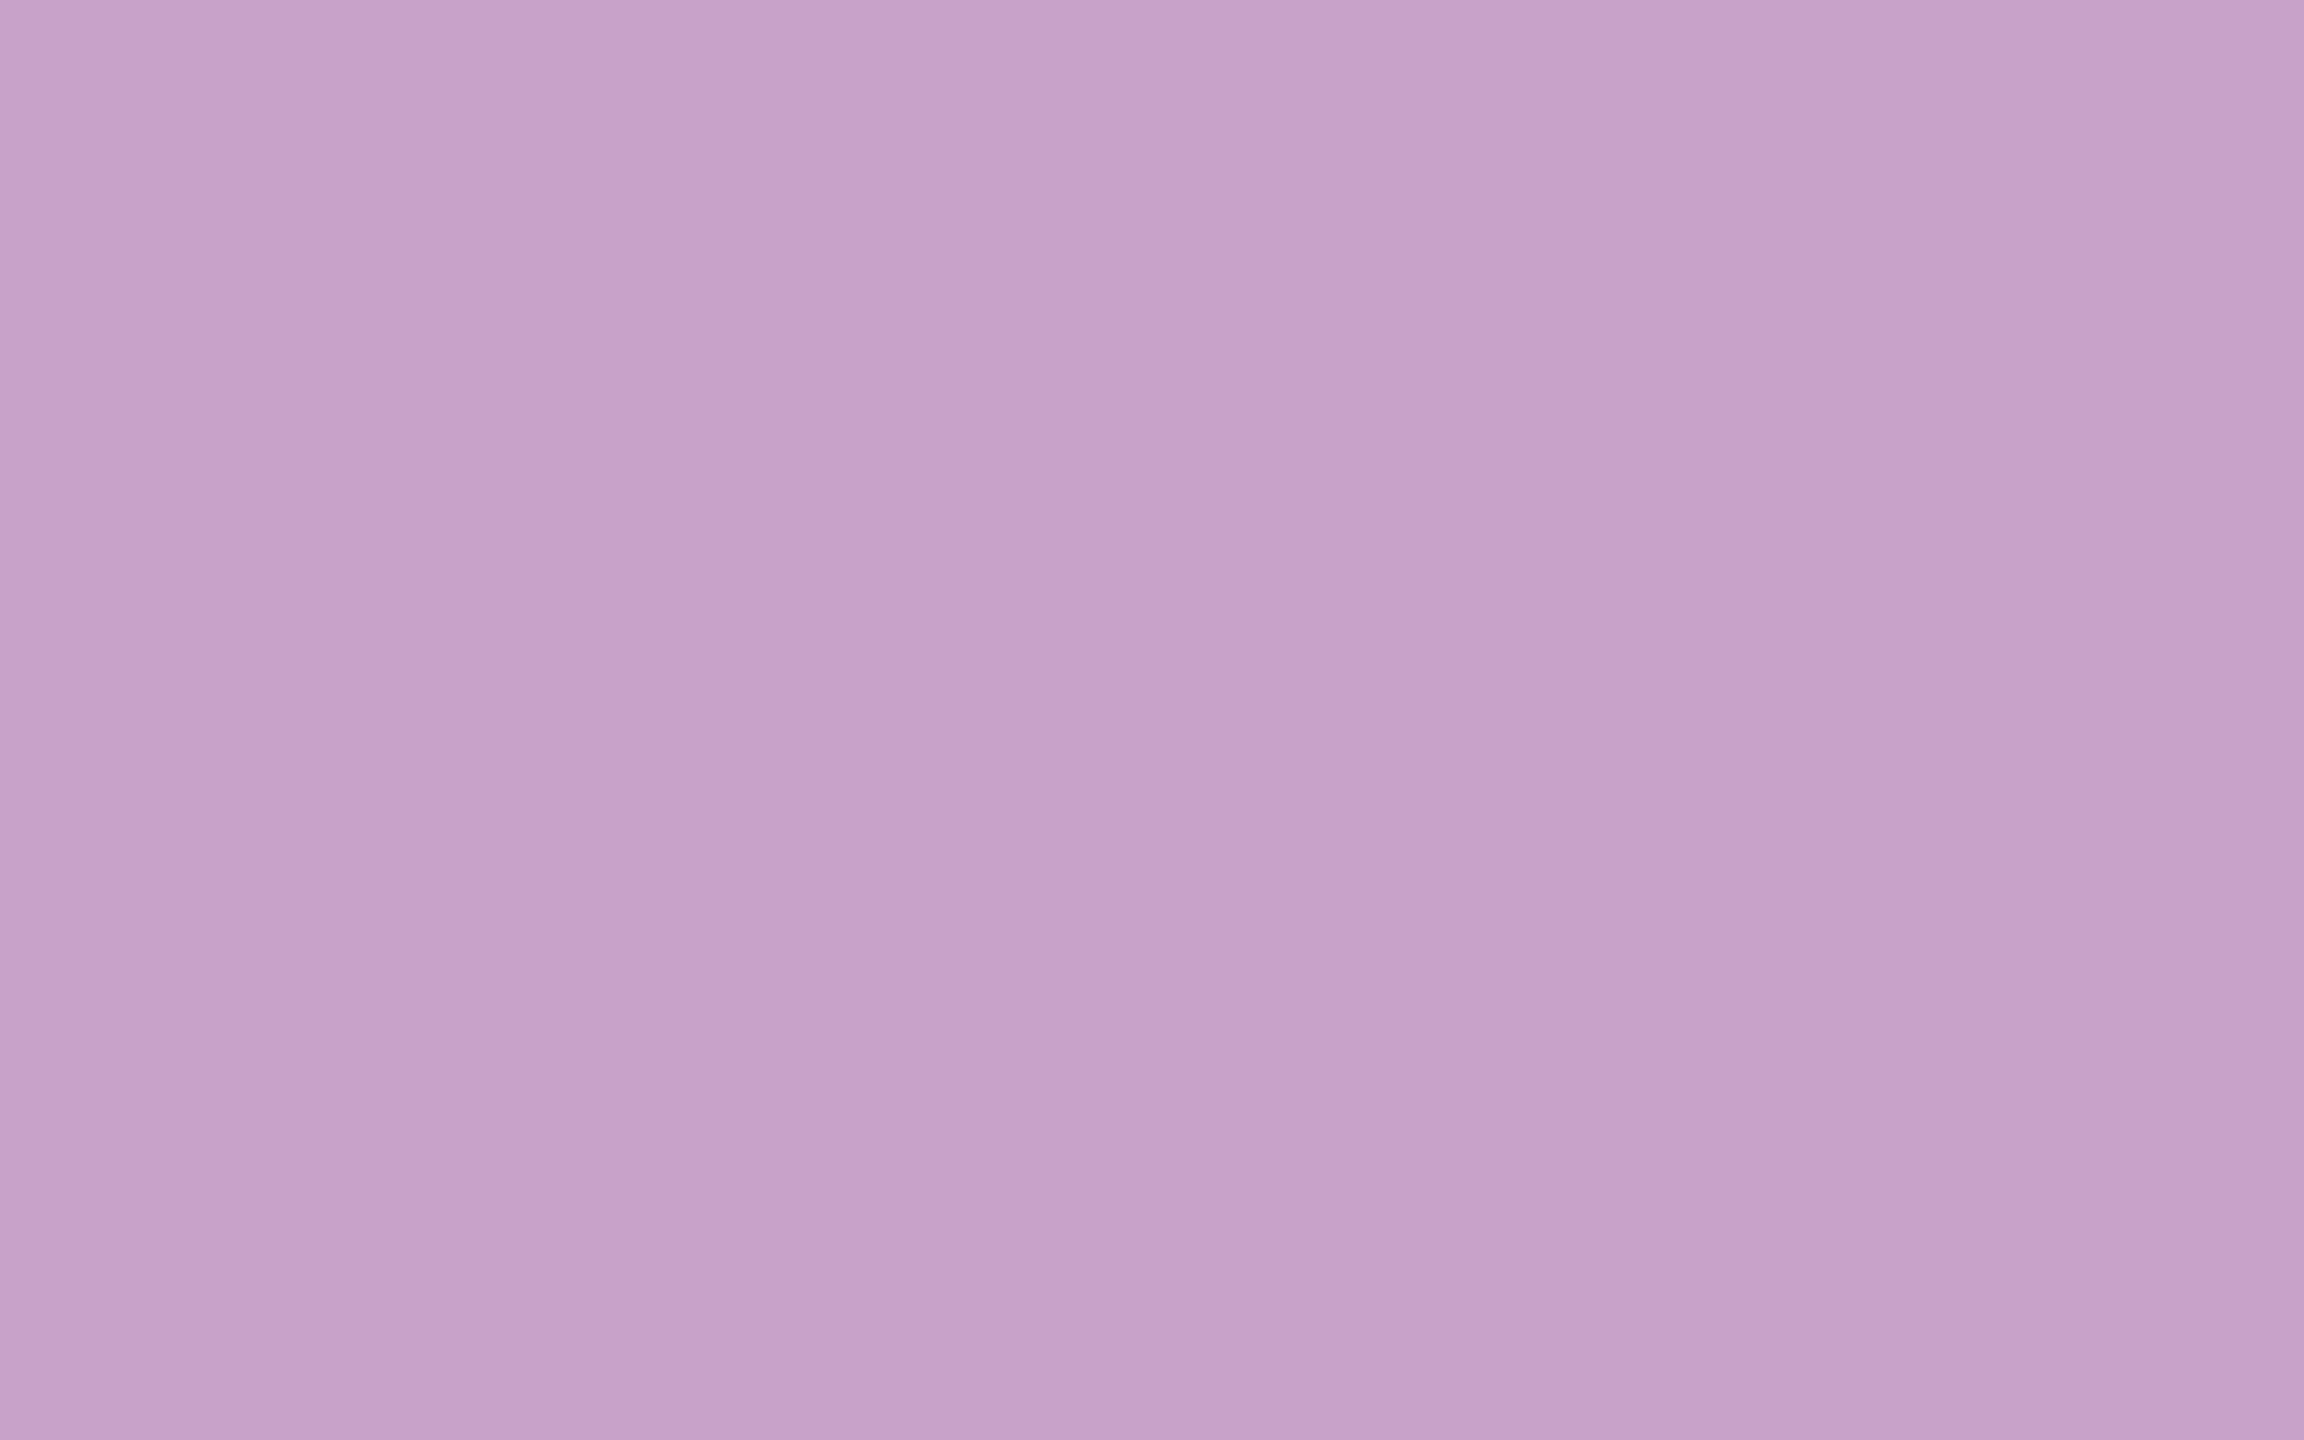 2304x1440 Lilac Solid Color Background